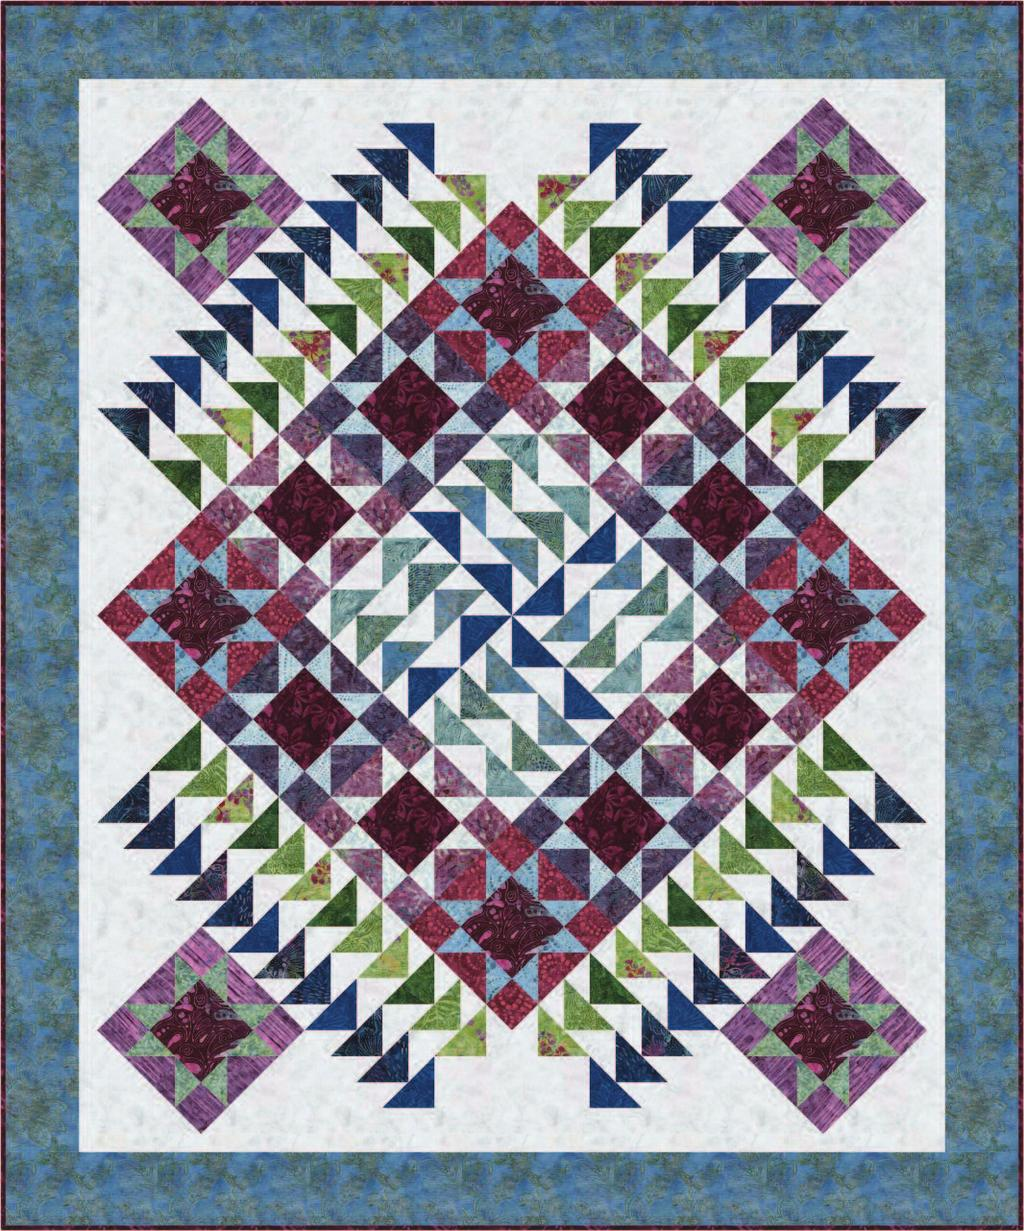 Tonga 6-Packs  Flight Plan quilt designed by Marilyn Foreman